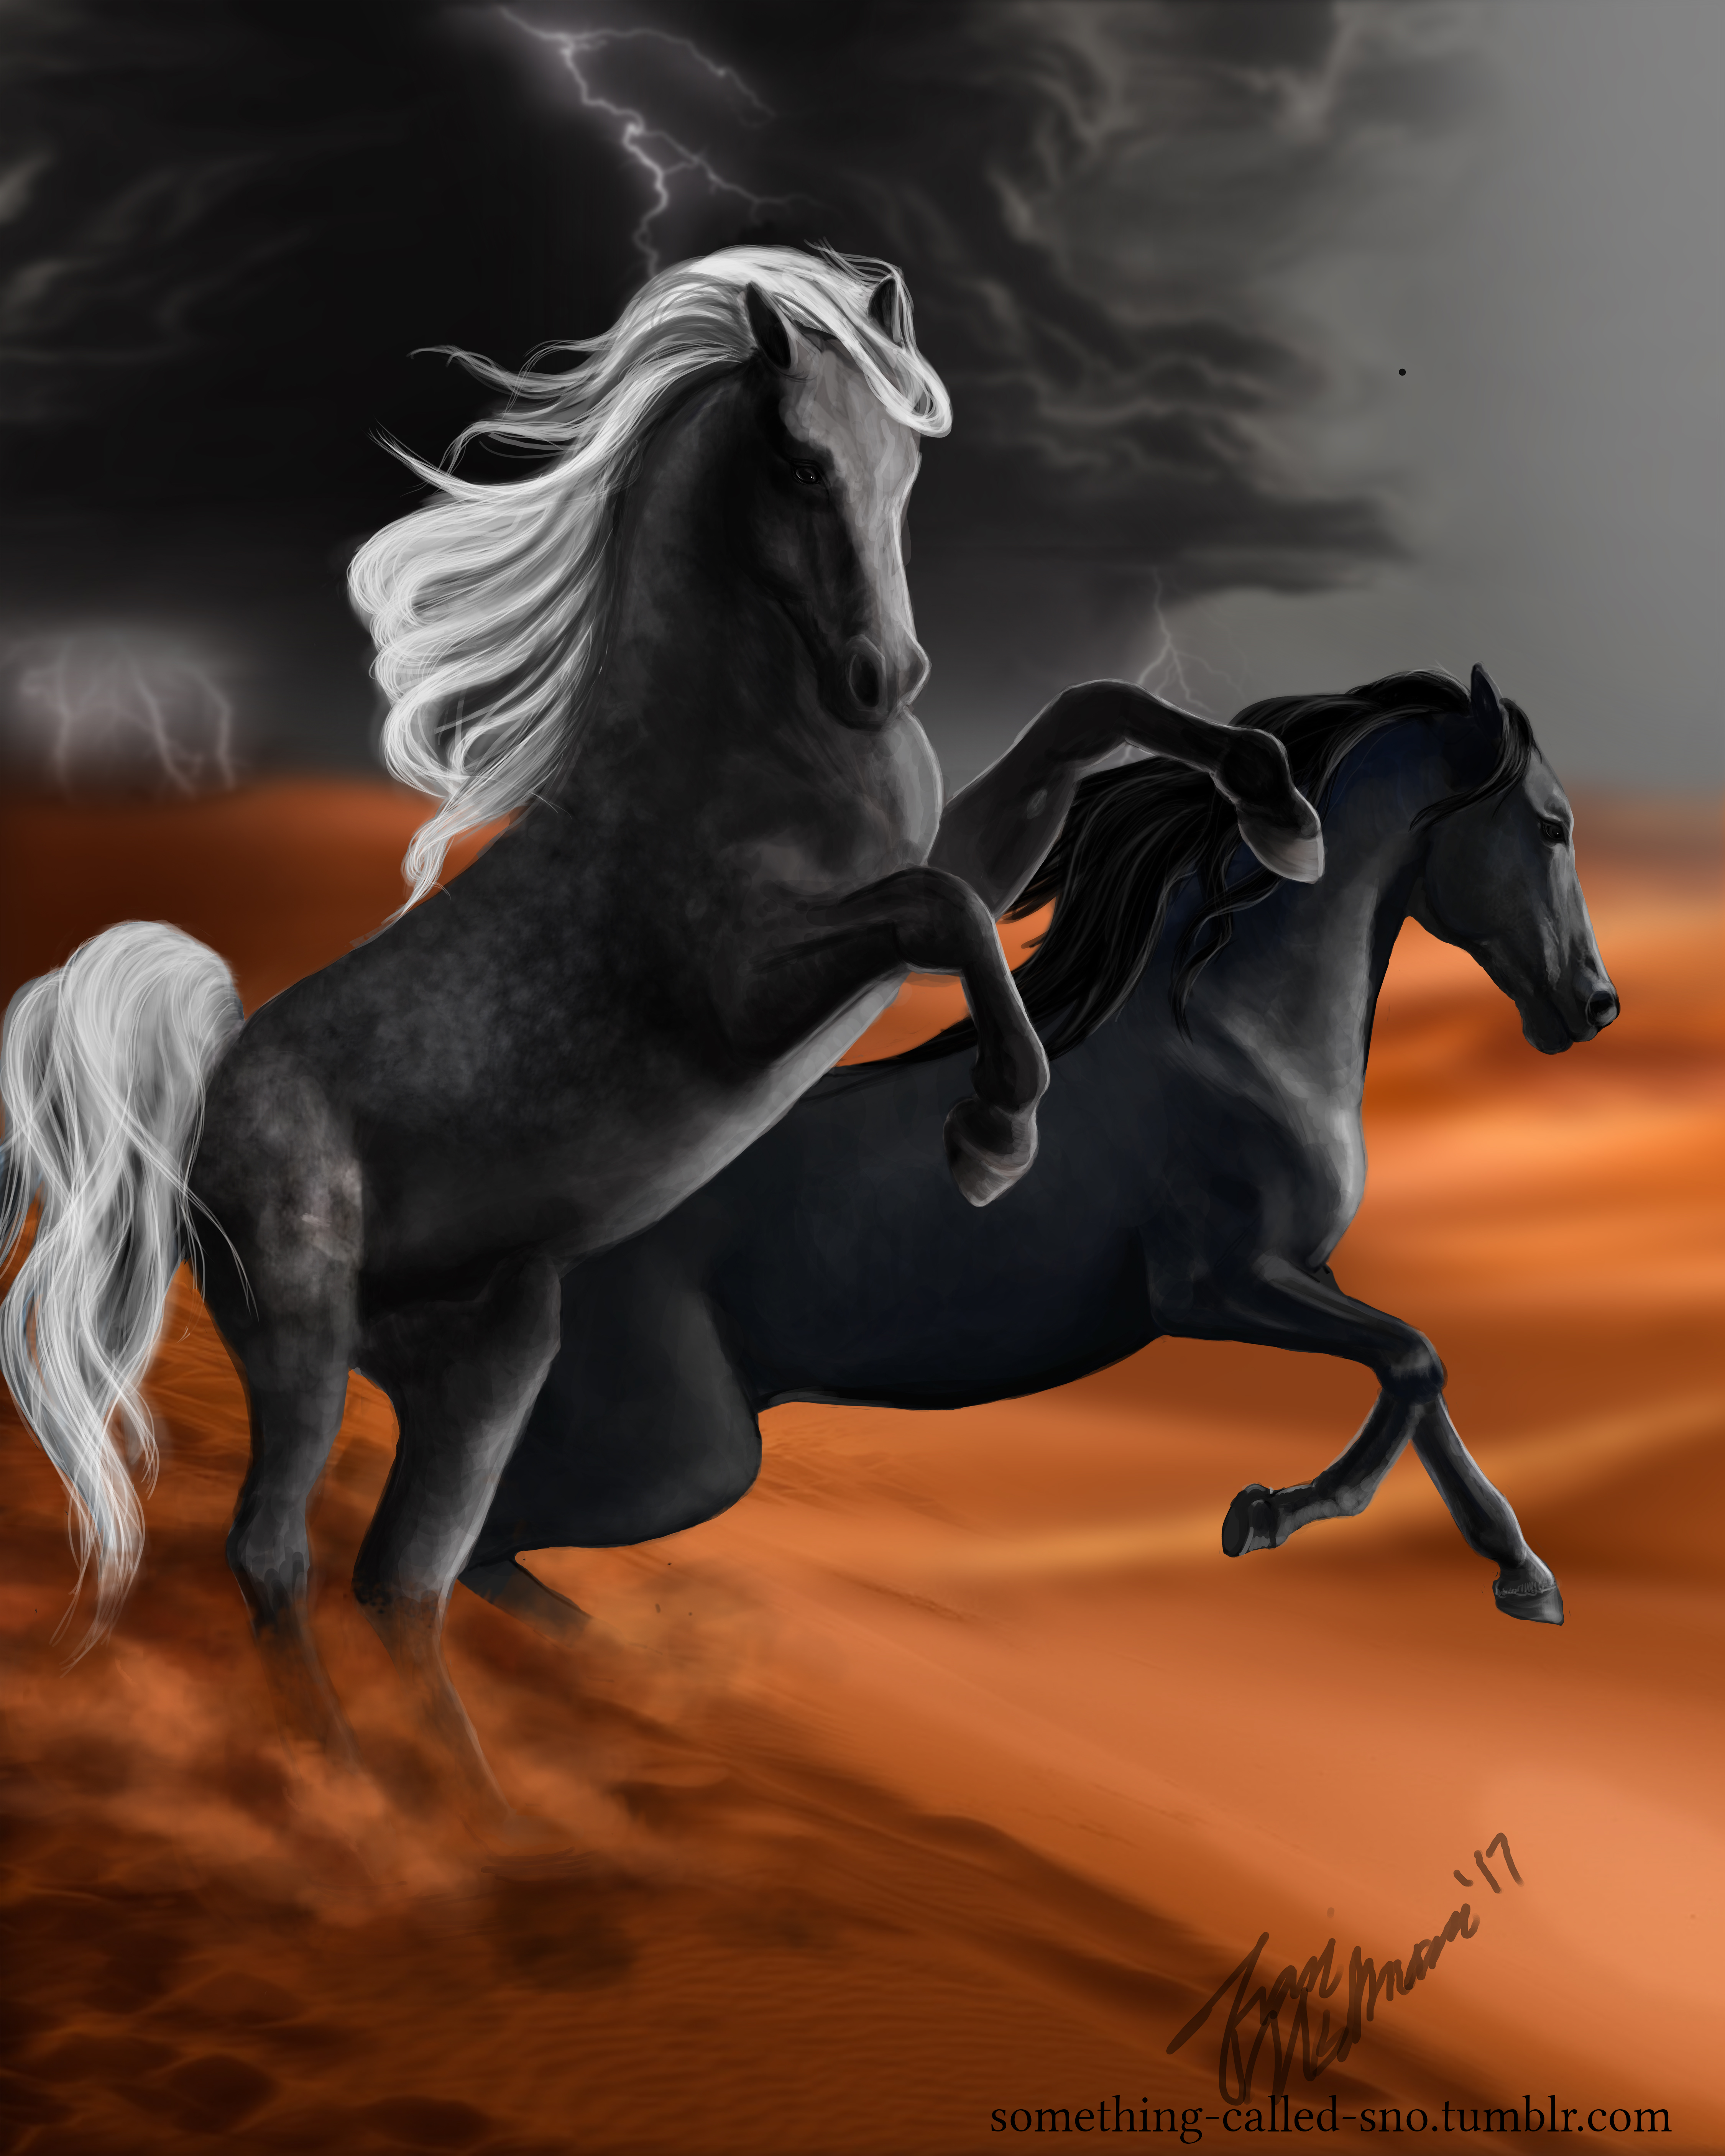 Asterion horses